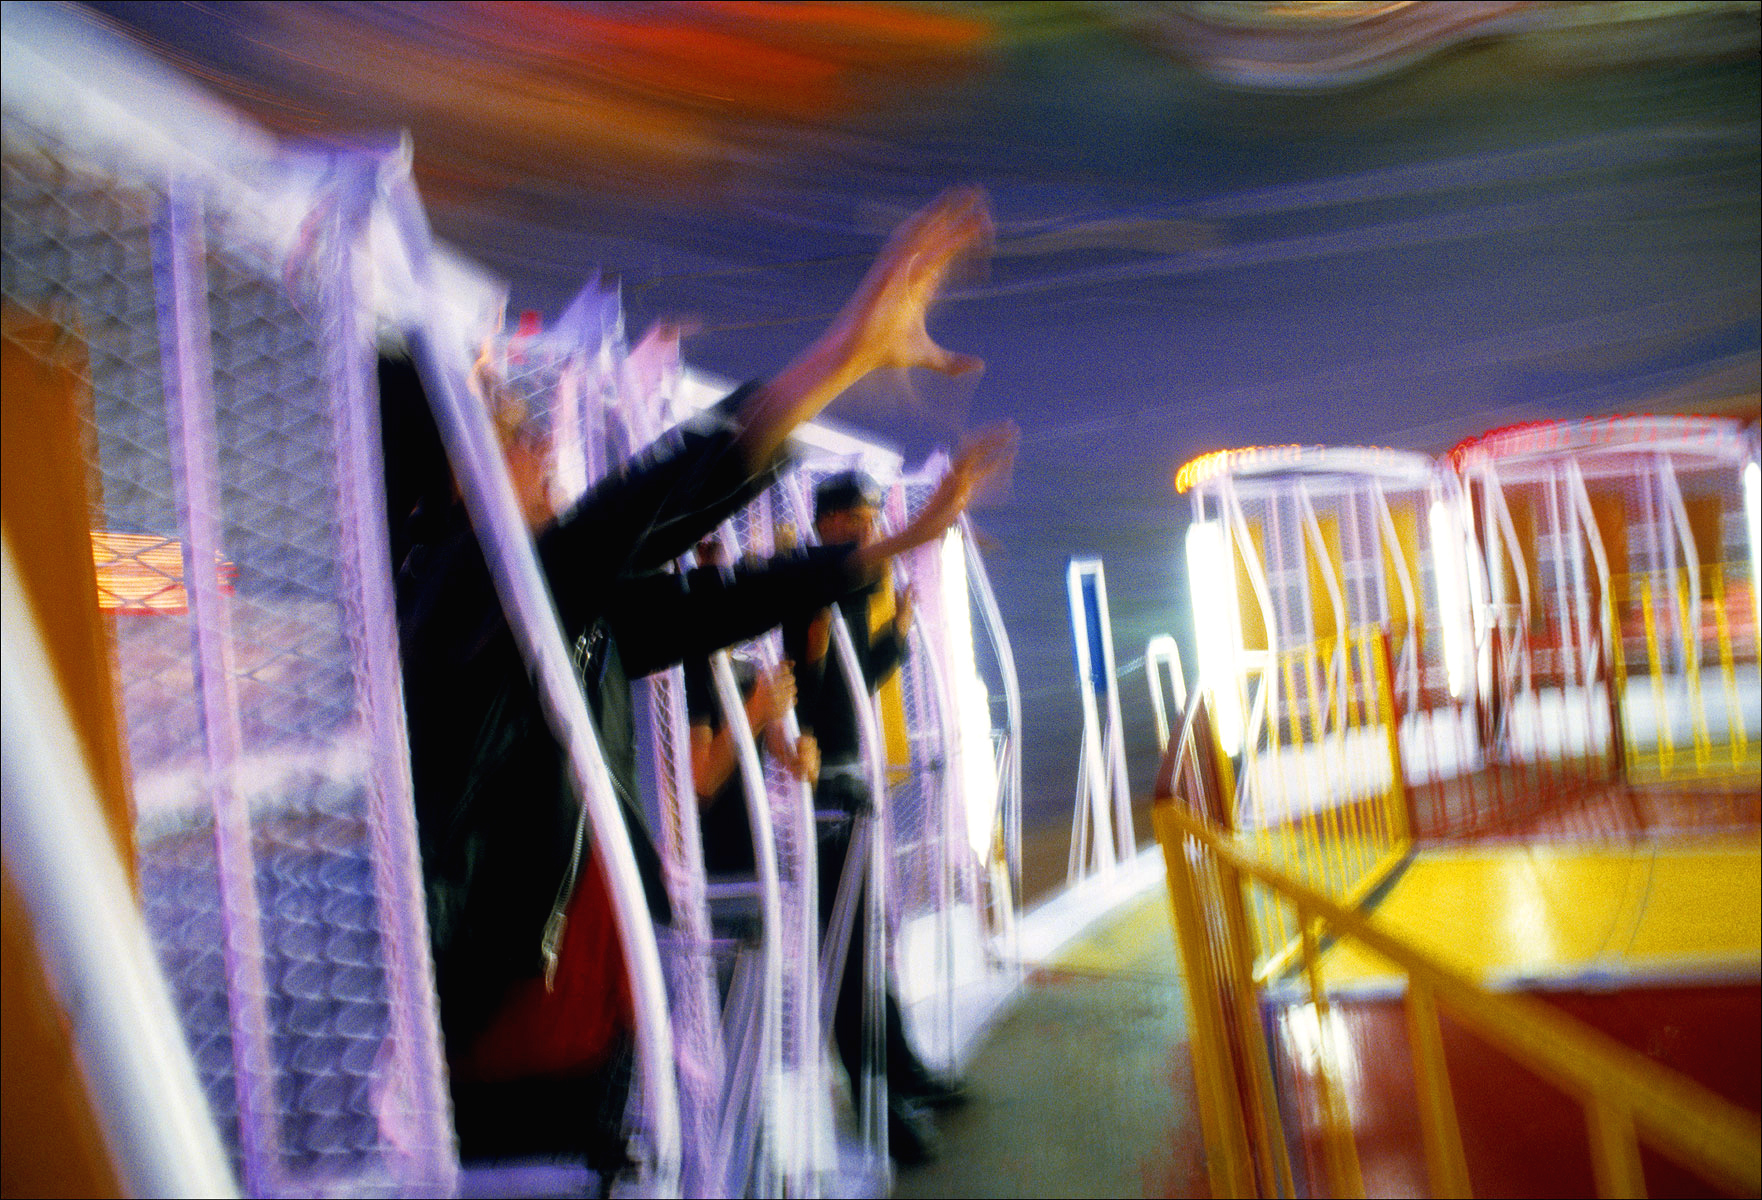 FineArt_25_Spin-Cycle_Santa-Cruz-Boardwalk_v1